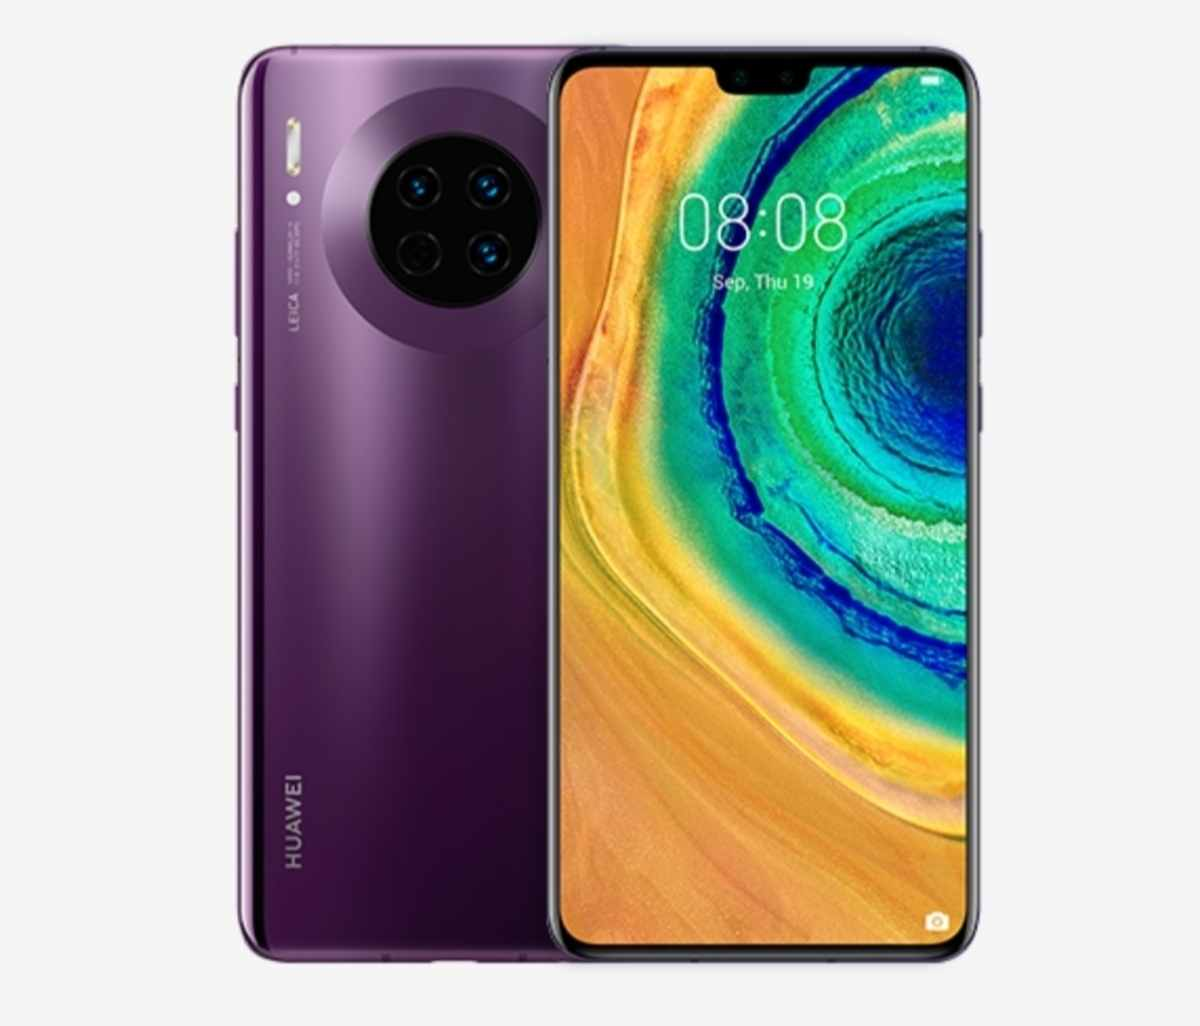 Huawei Mate 30 image, specs and price in Nigeria, Huawei mate 30 price in Nigeria